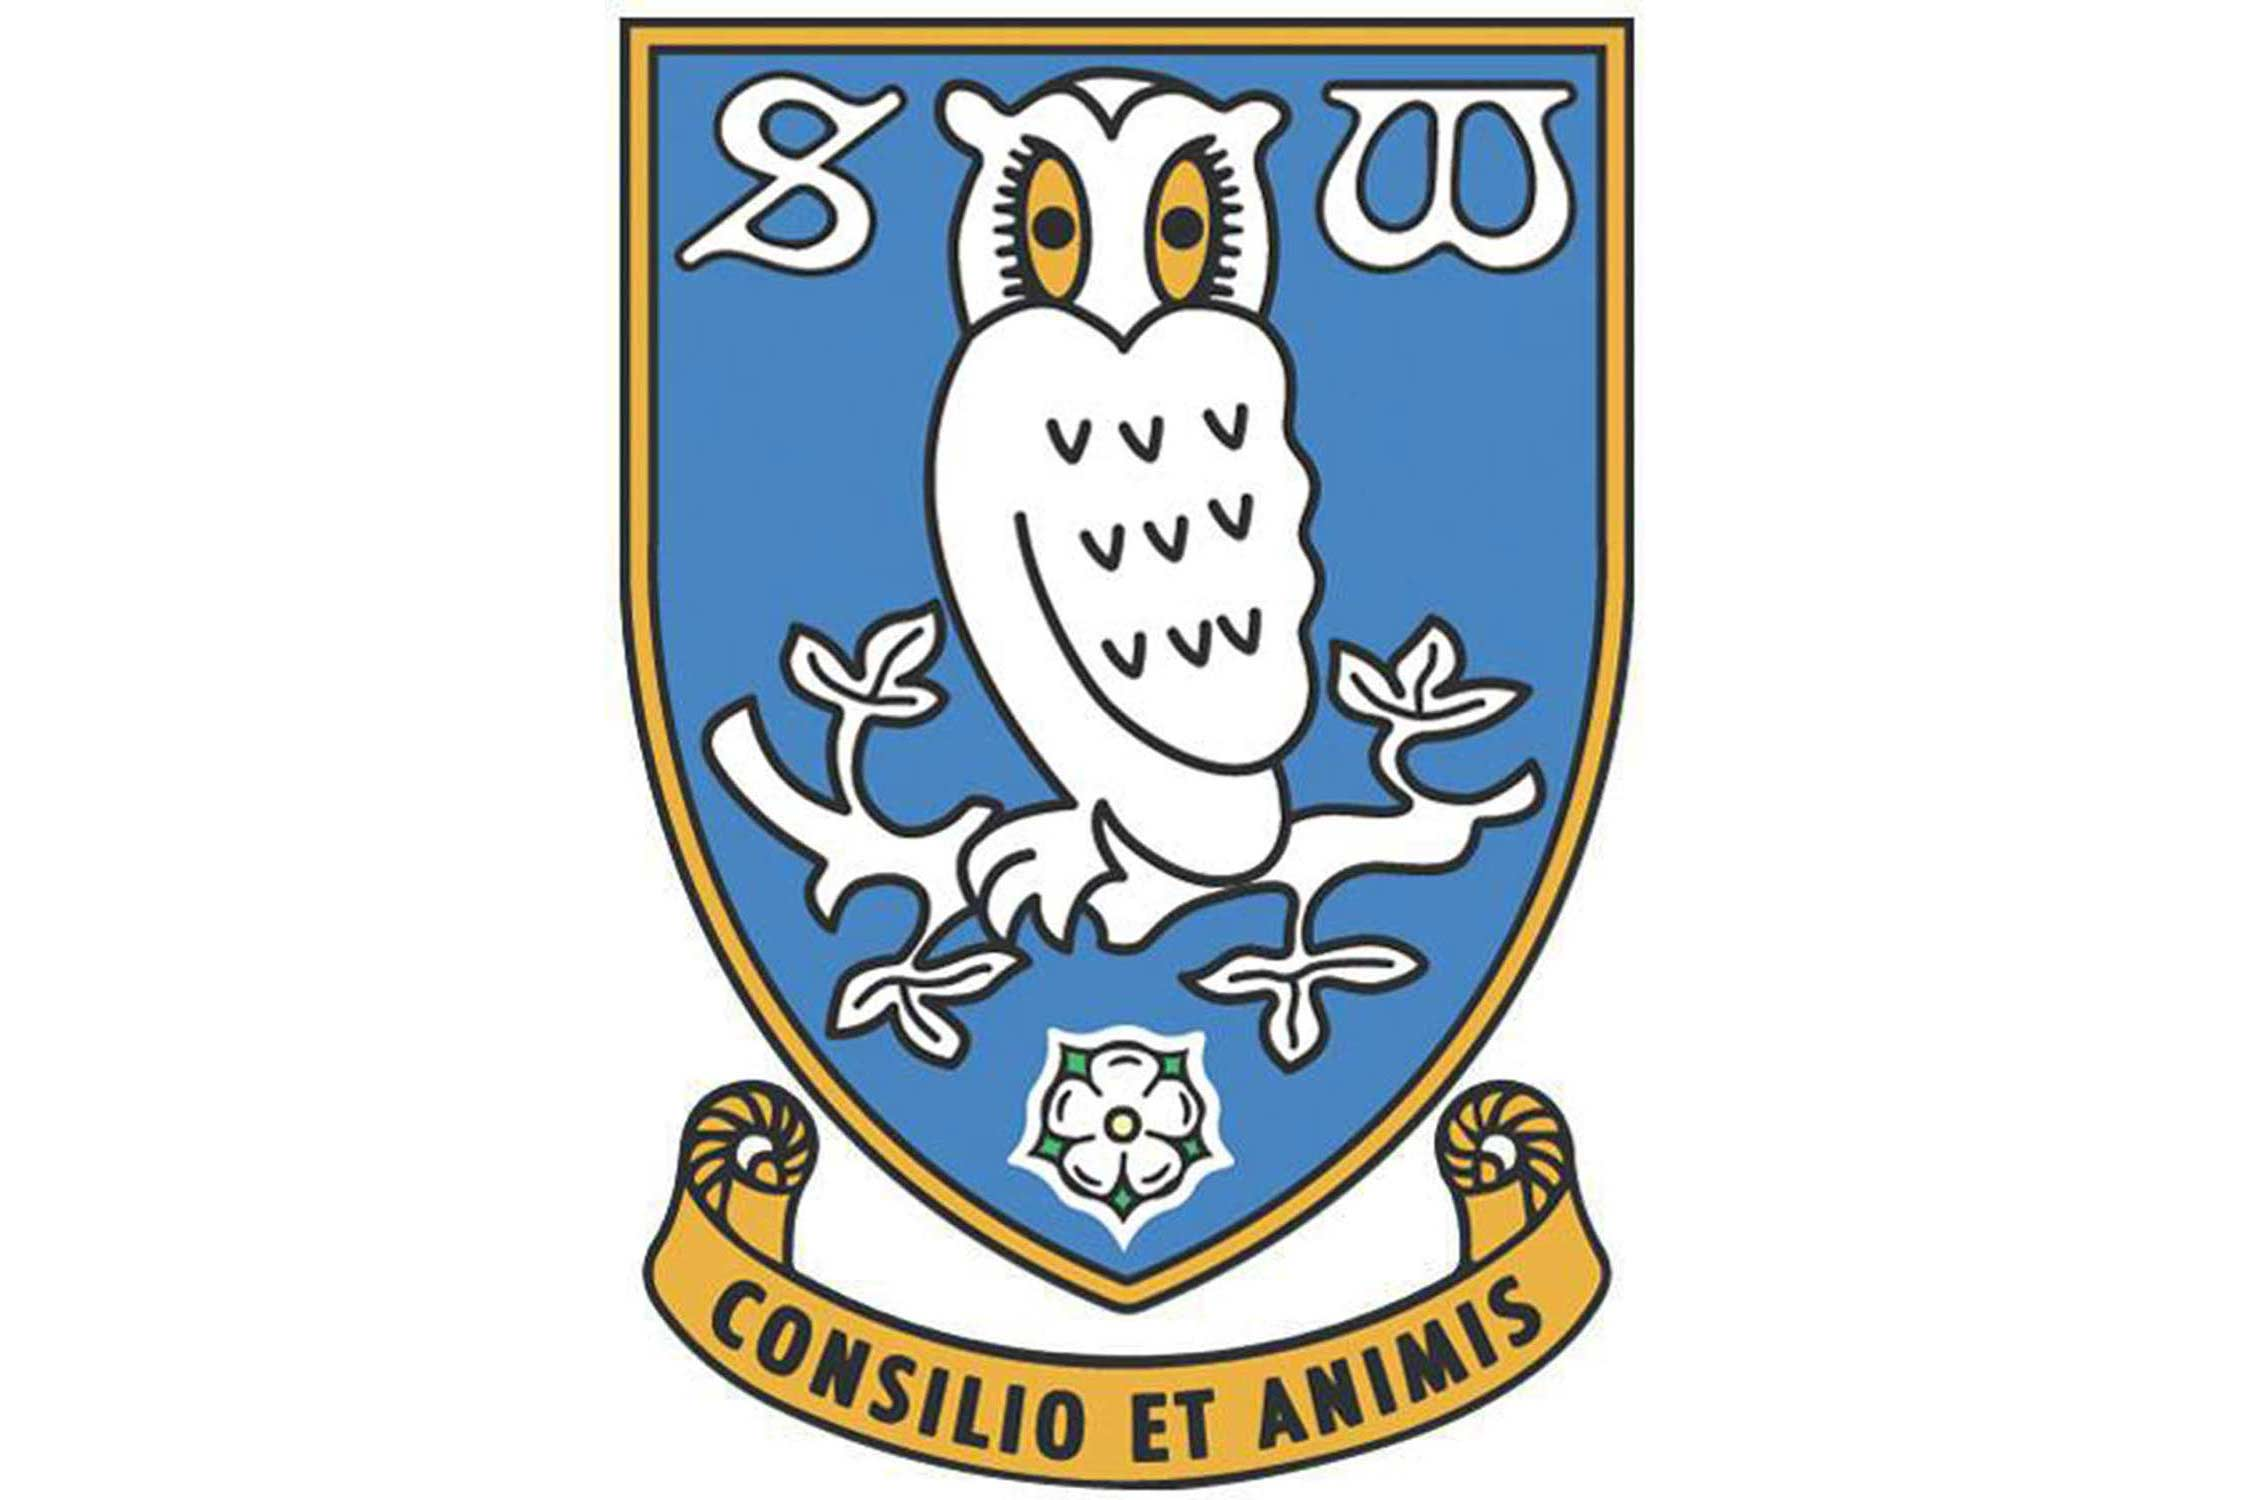 The owl in the crest represents Owlerton, a suburban section of Sheffield where the club's home stadium is located.